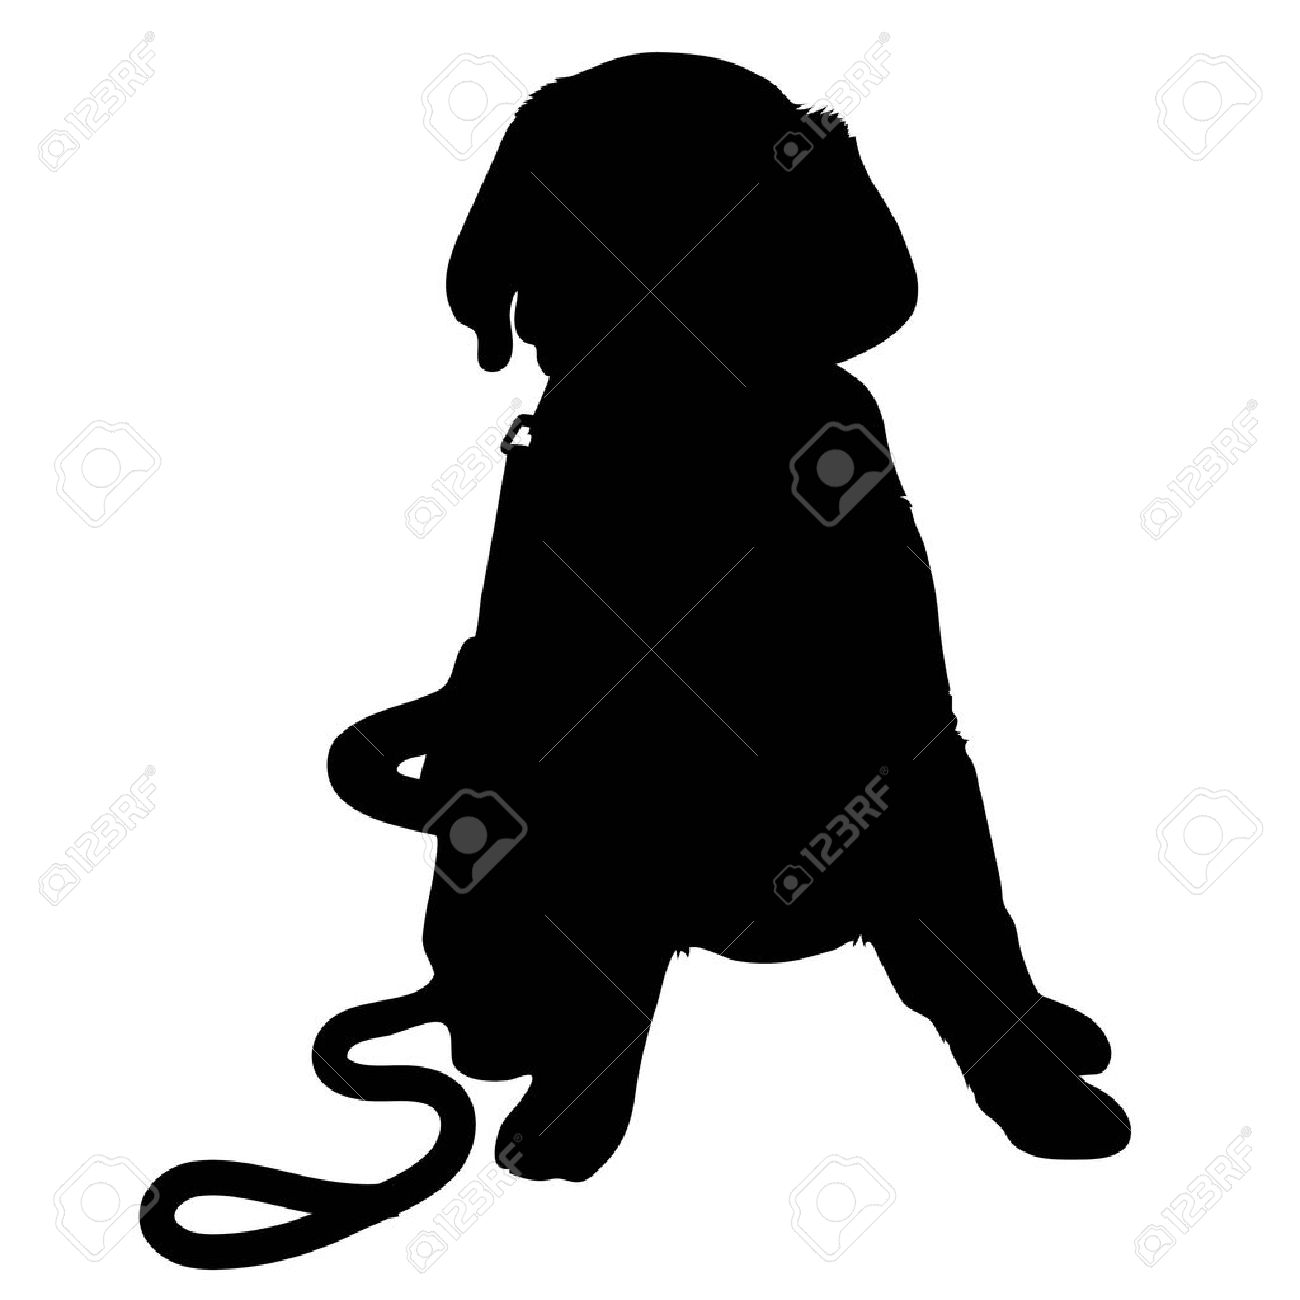 A black silhouette of a Labrador Retriever puppy with a leash by its side - 31510186